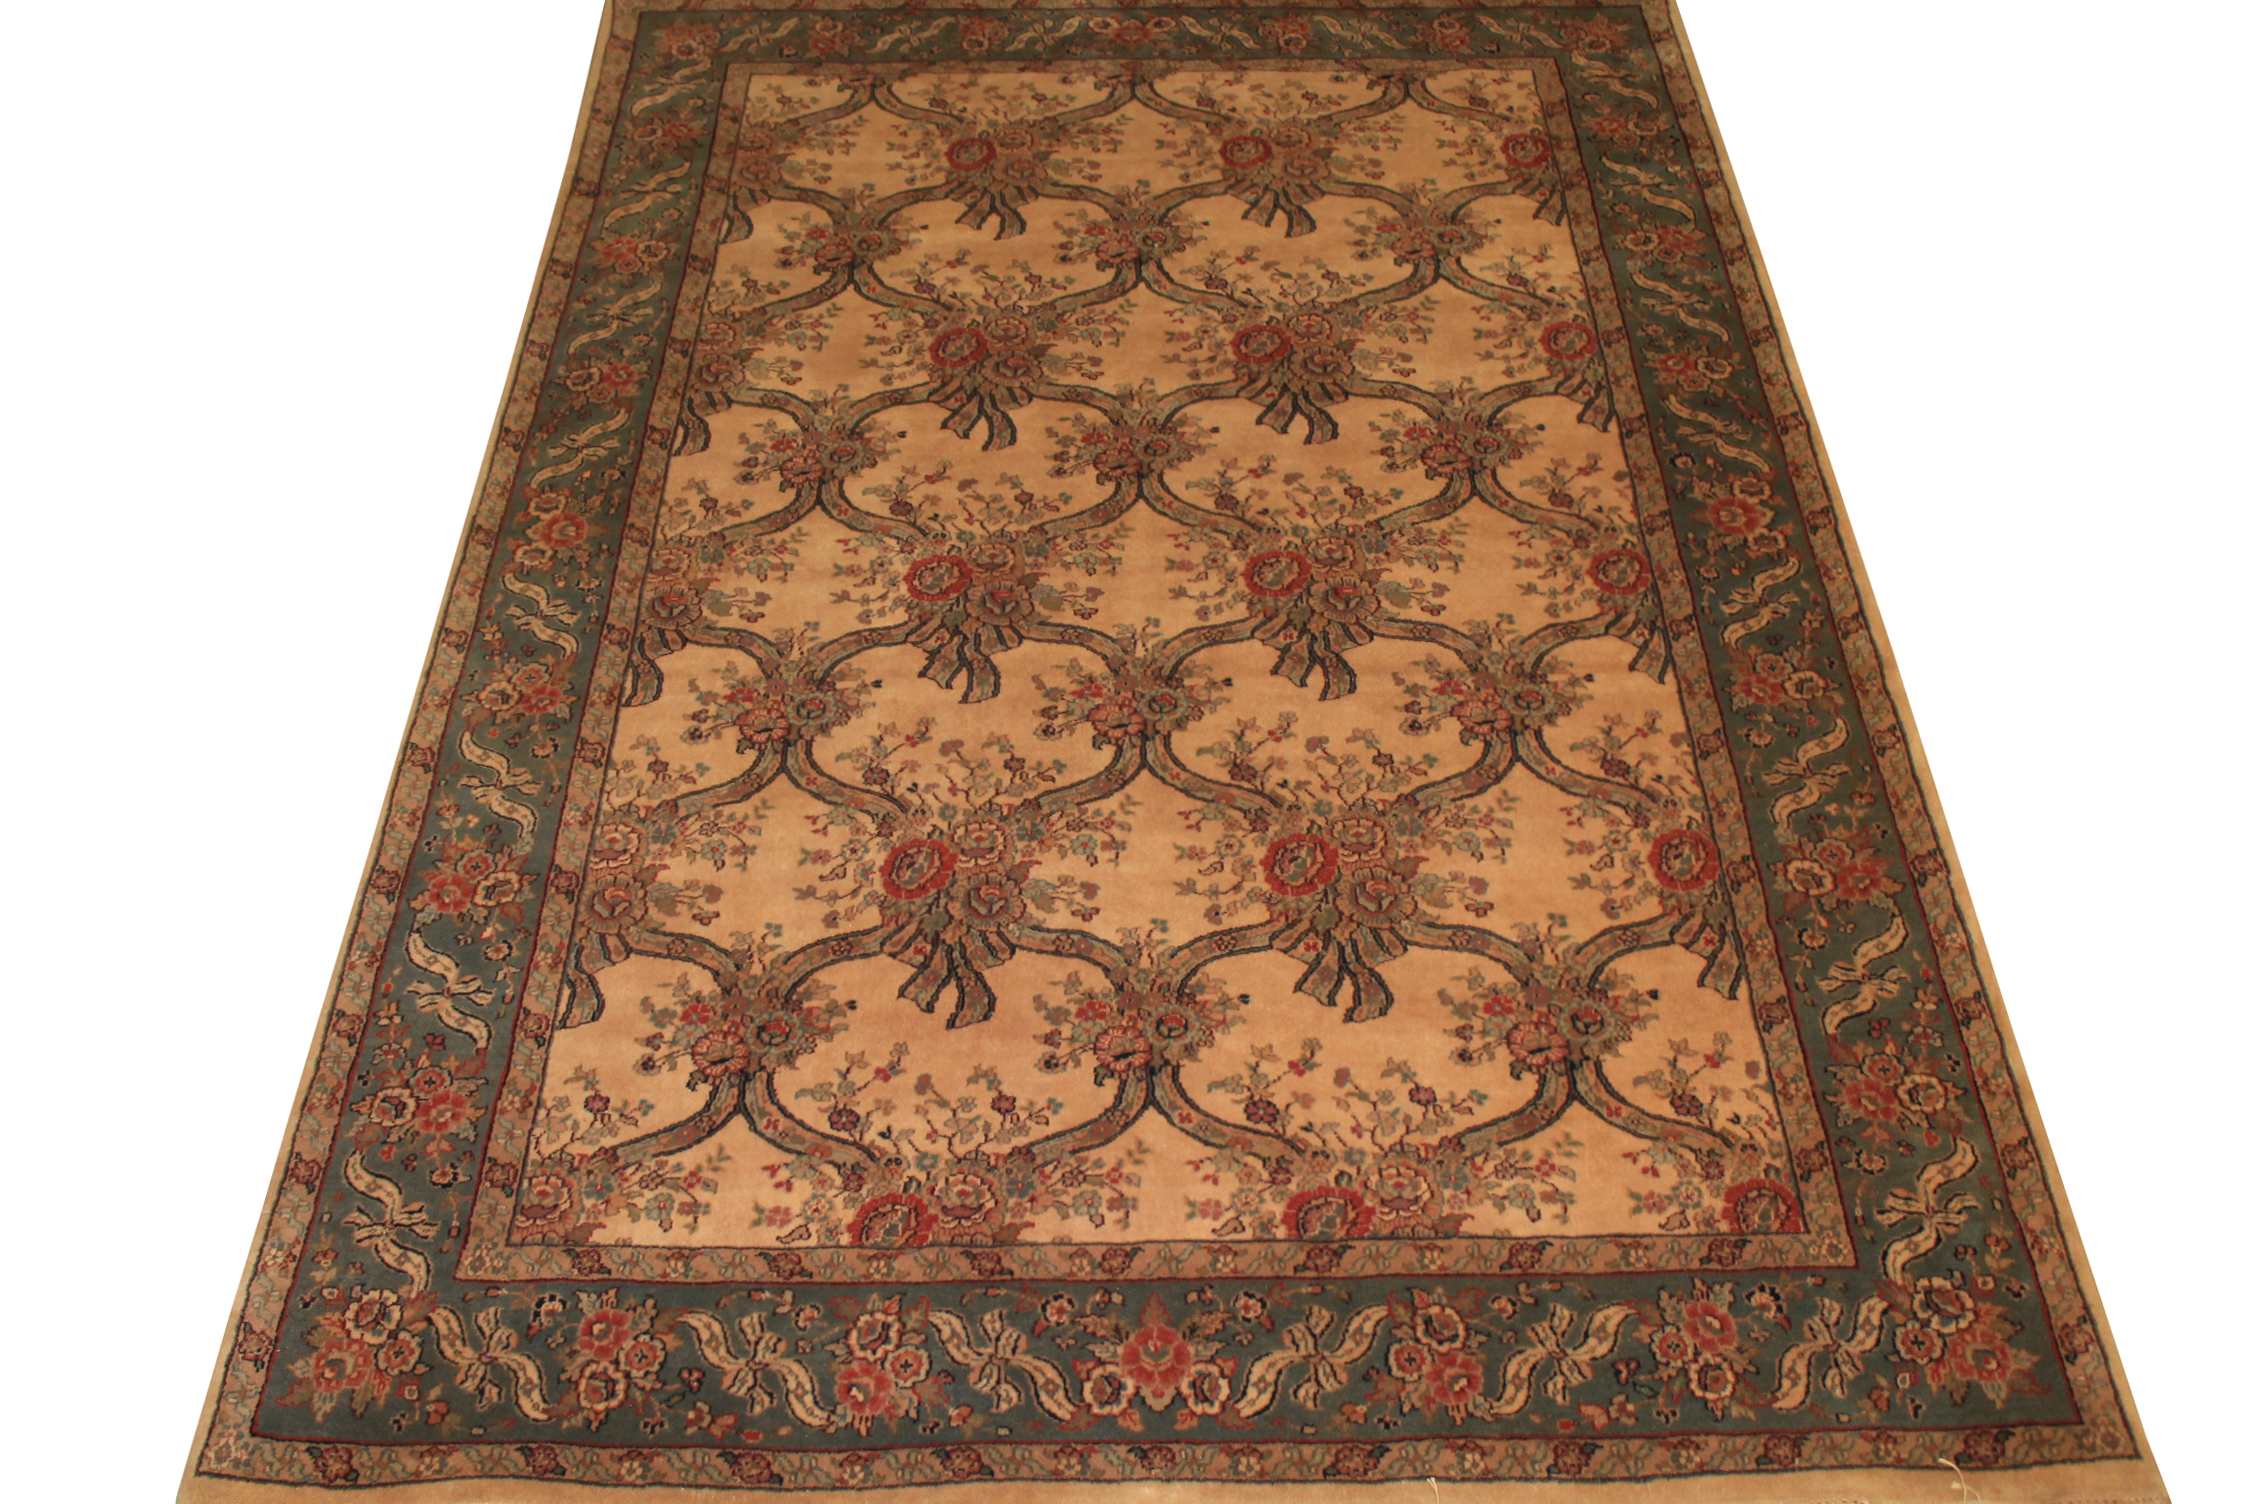 6x9 Traditional Hand Knotted Wool Area Rug - MR0731